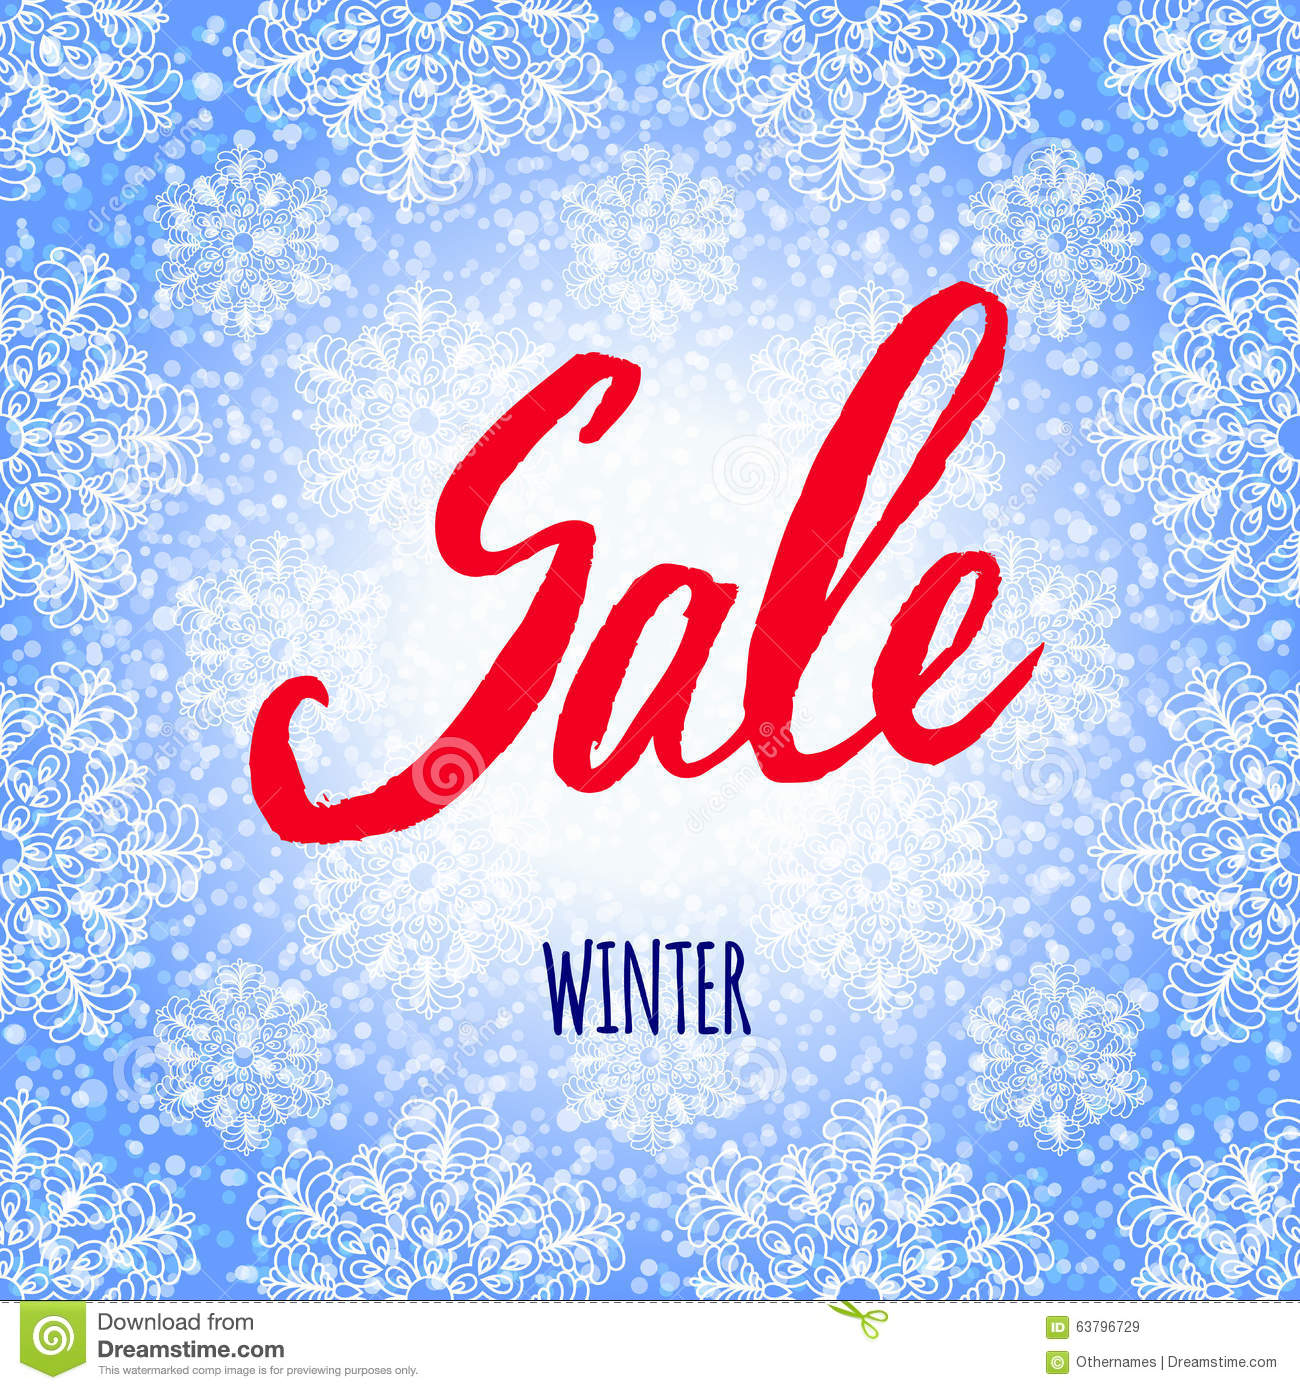 Winter sale christmas design vector template cartoon Architecture firm for sale